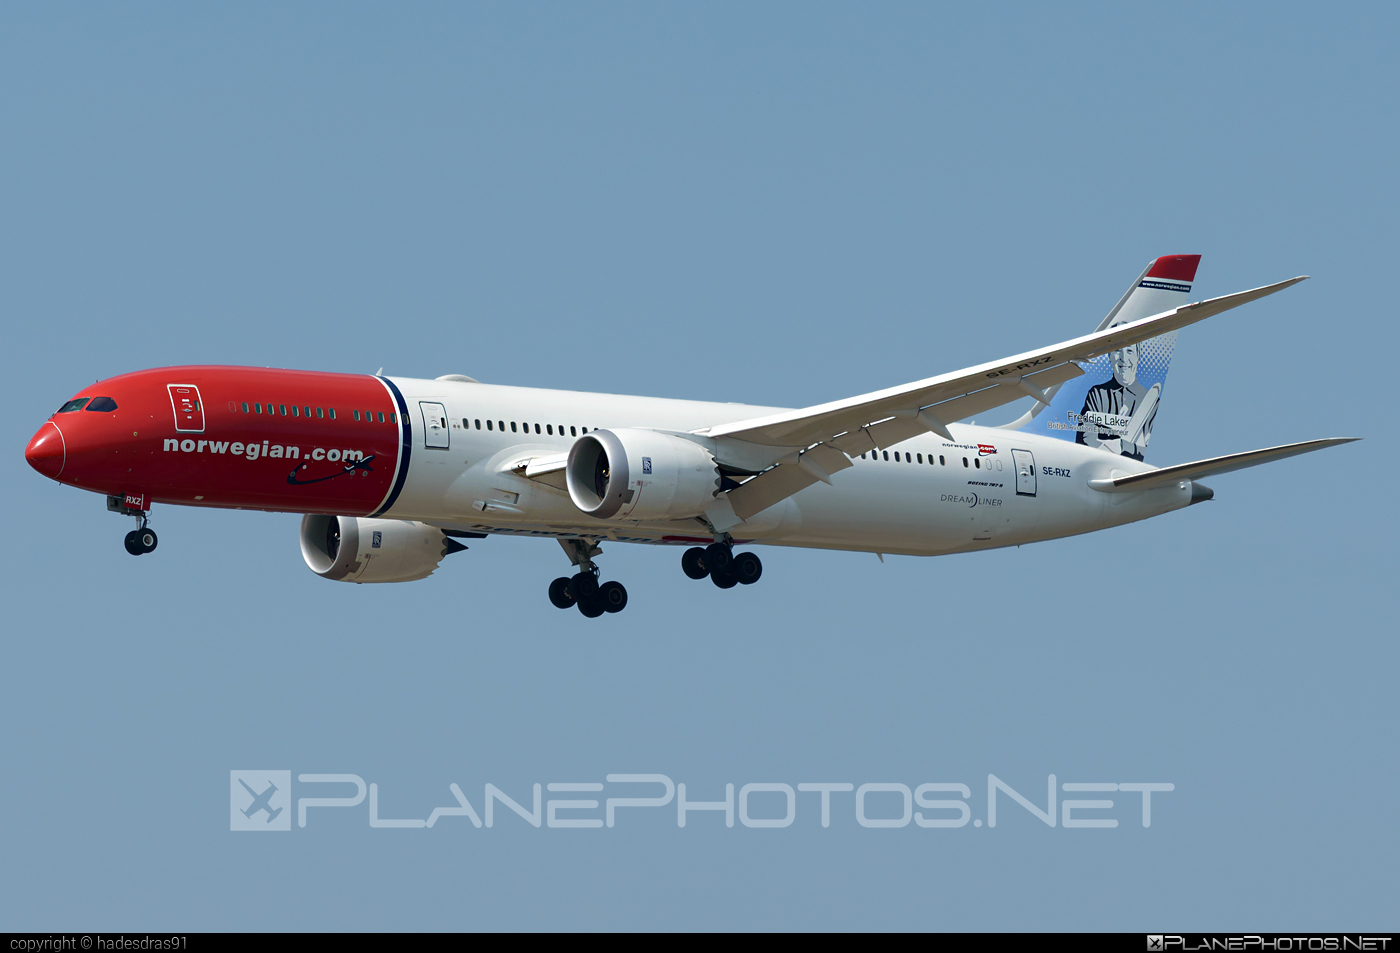 Boeing 787-9 Dreamliner - SE-RXZ operated by Norwegian Air Sweden #b787 #boeing #boeing787 #dreamliner #norwegian #norwegianair #norwegianairsweden